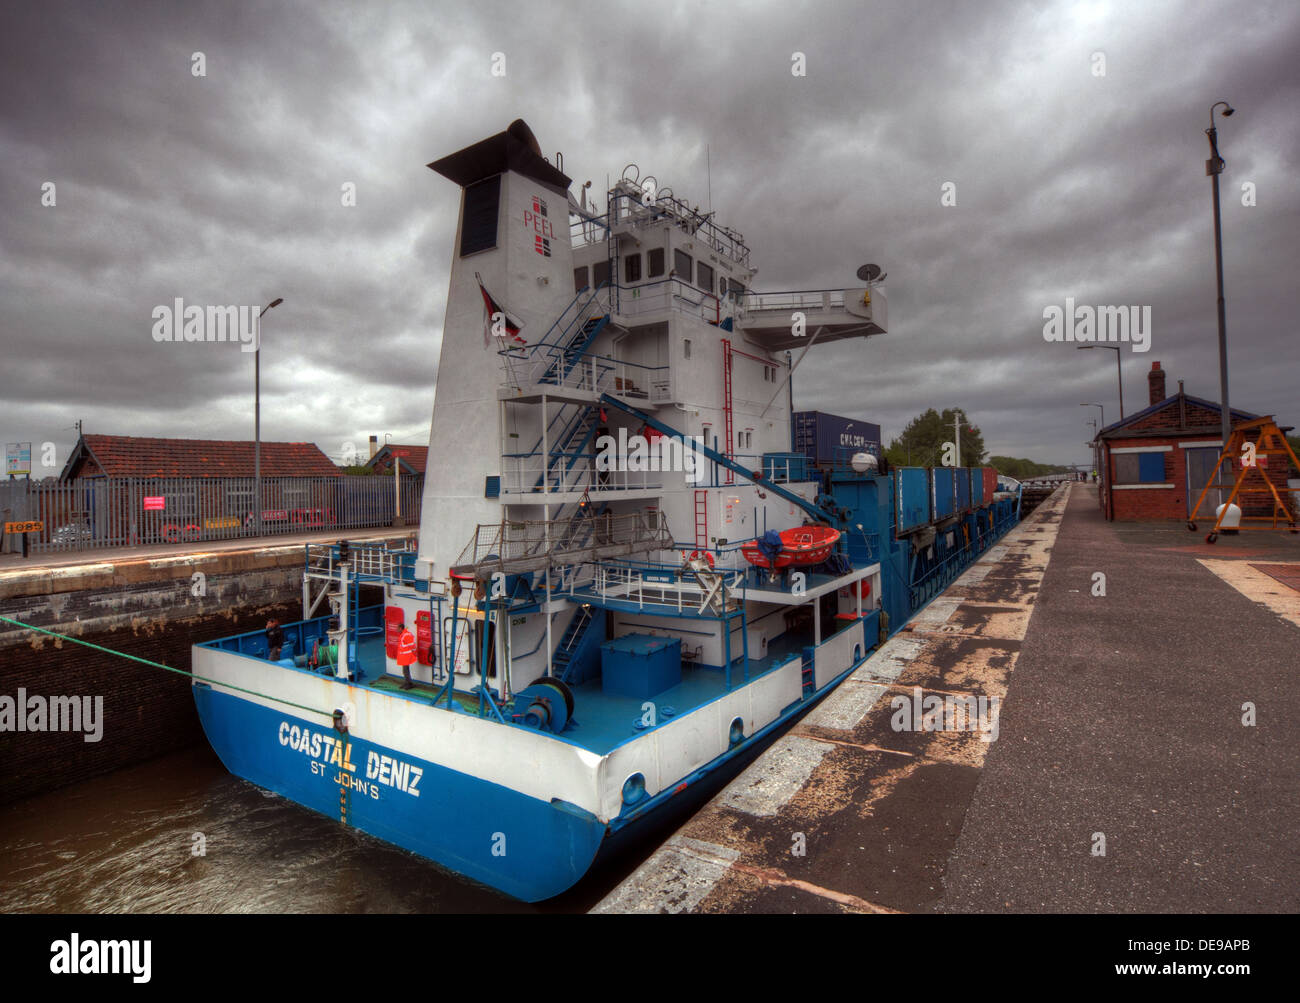 Manchester,ship,canal,company,Manchester,ship,canal,co,company,ship.boat,lock,Coastal,Deniz,at,Latchford,Locks,MSCC,Warrington,England,UK,containers,container,goods,MV,MV Coastal Deniz,Liverpool,Seaforth,terminal,goods,Warringtonians,gotonysmith,Buy Pictures of,Buy Images Of